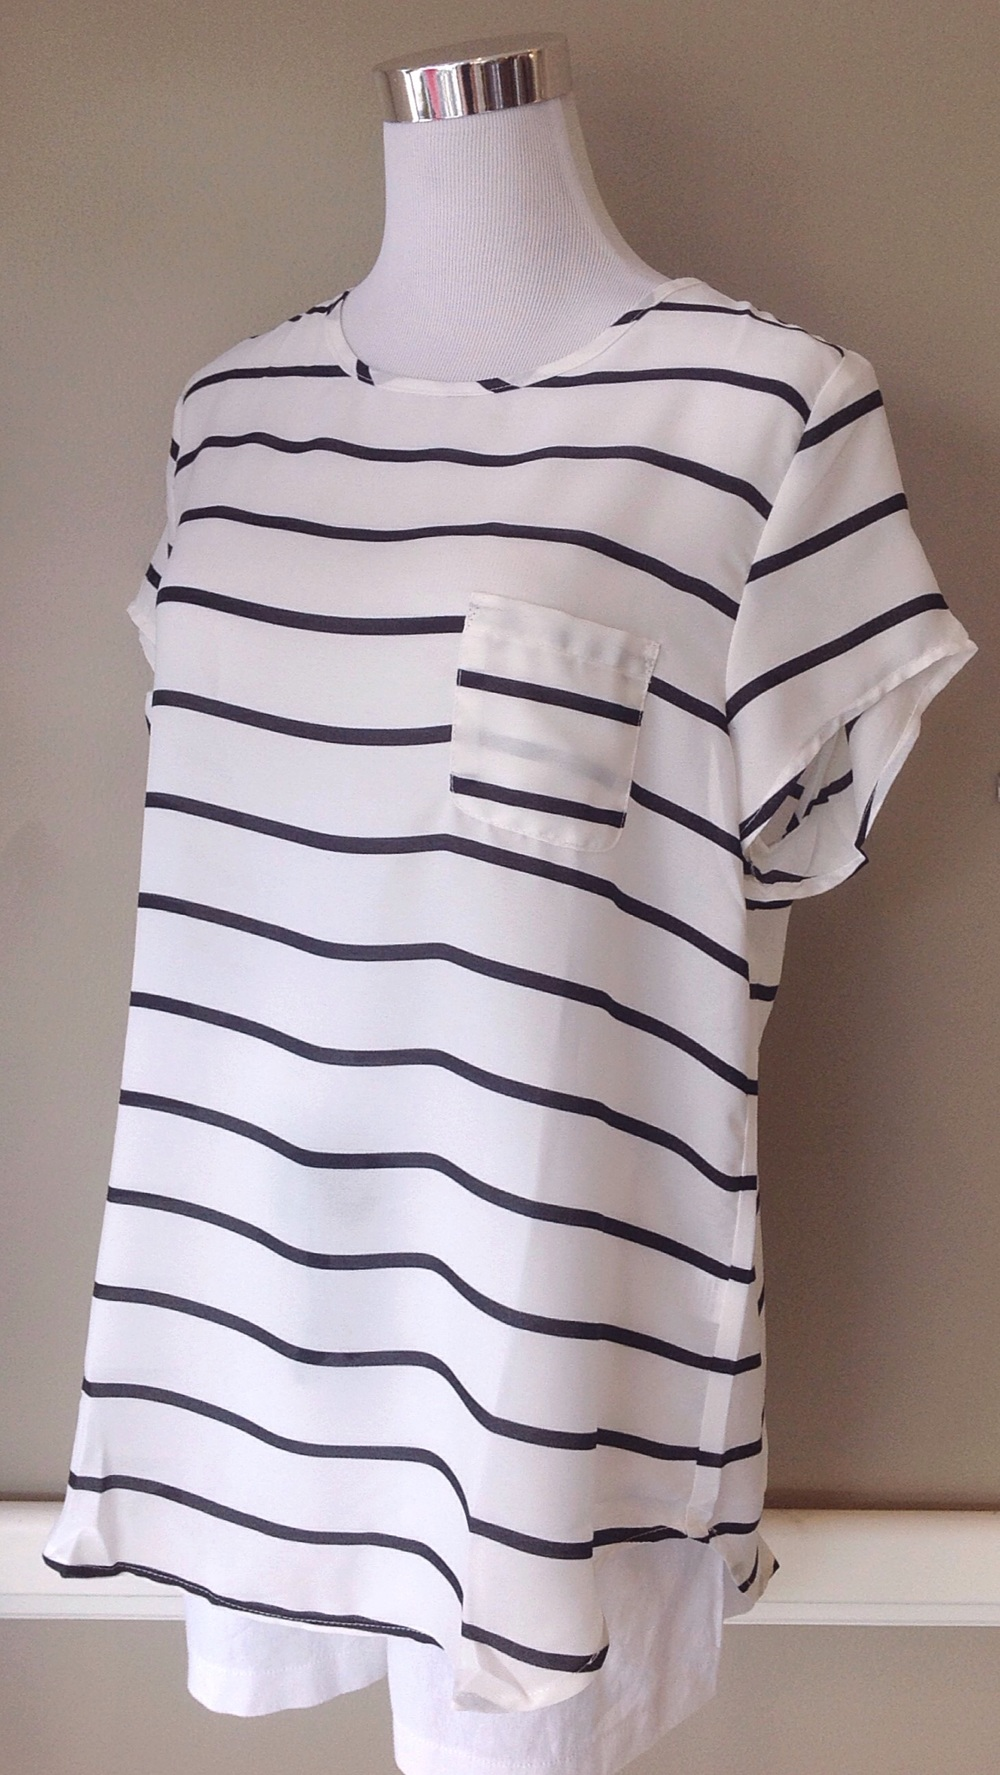 Black and white stripe top, $32